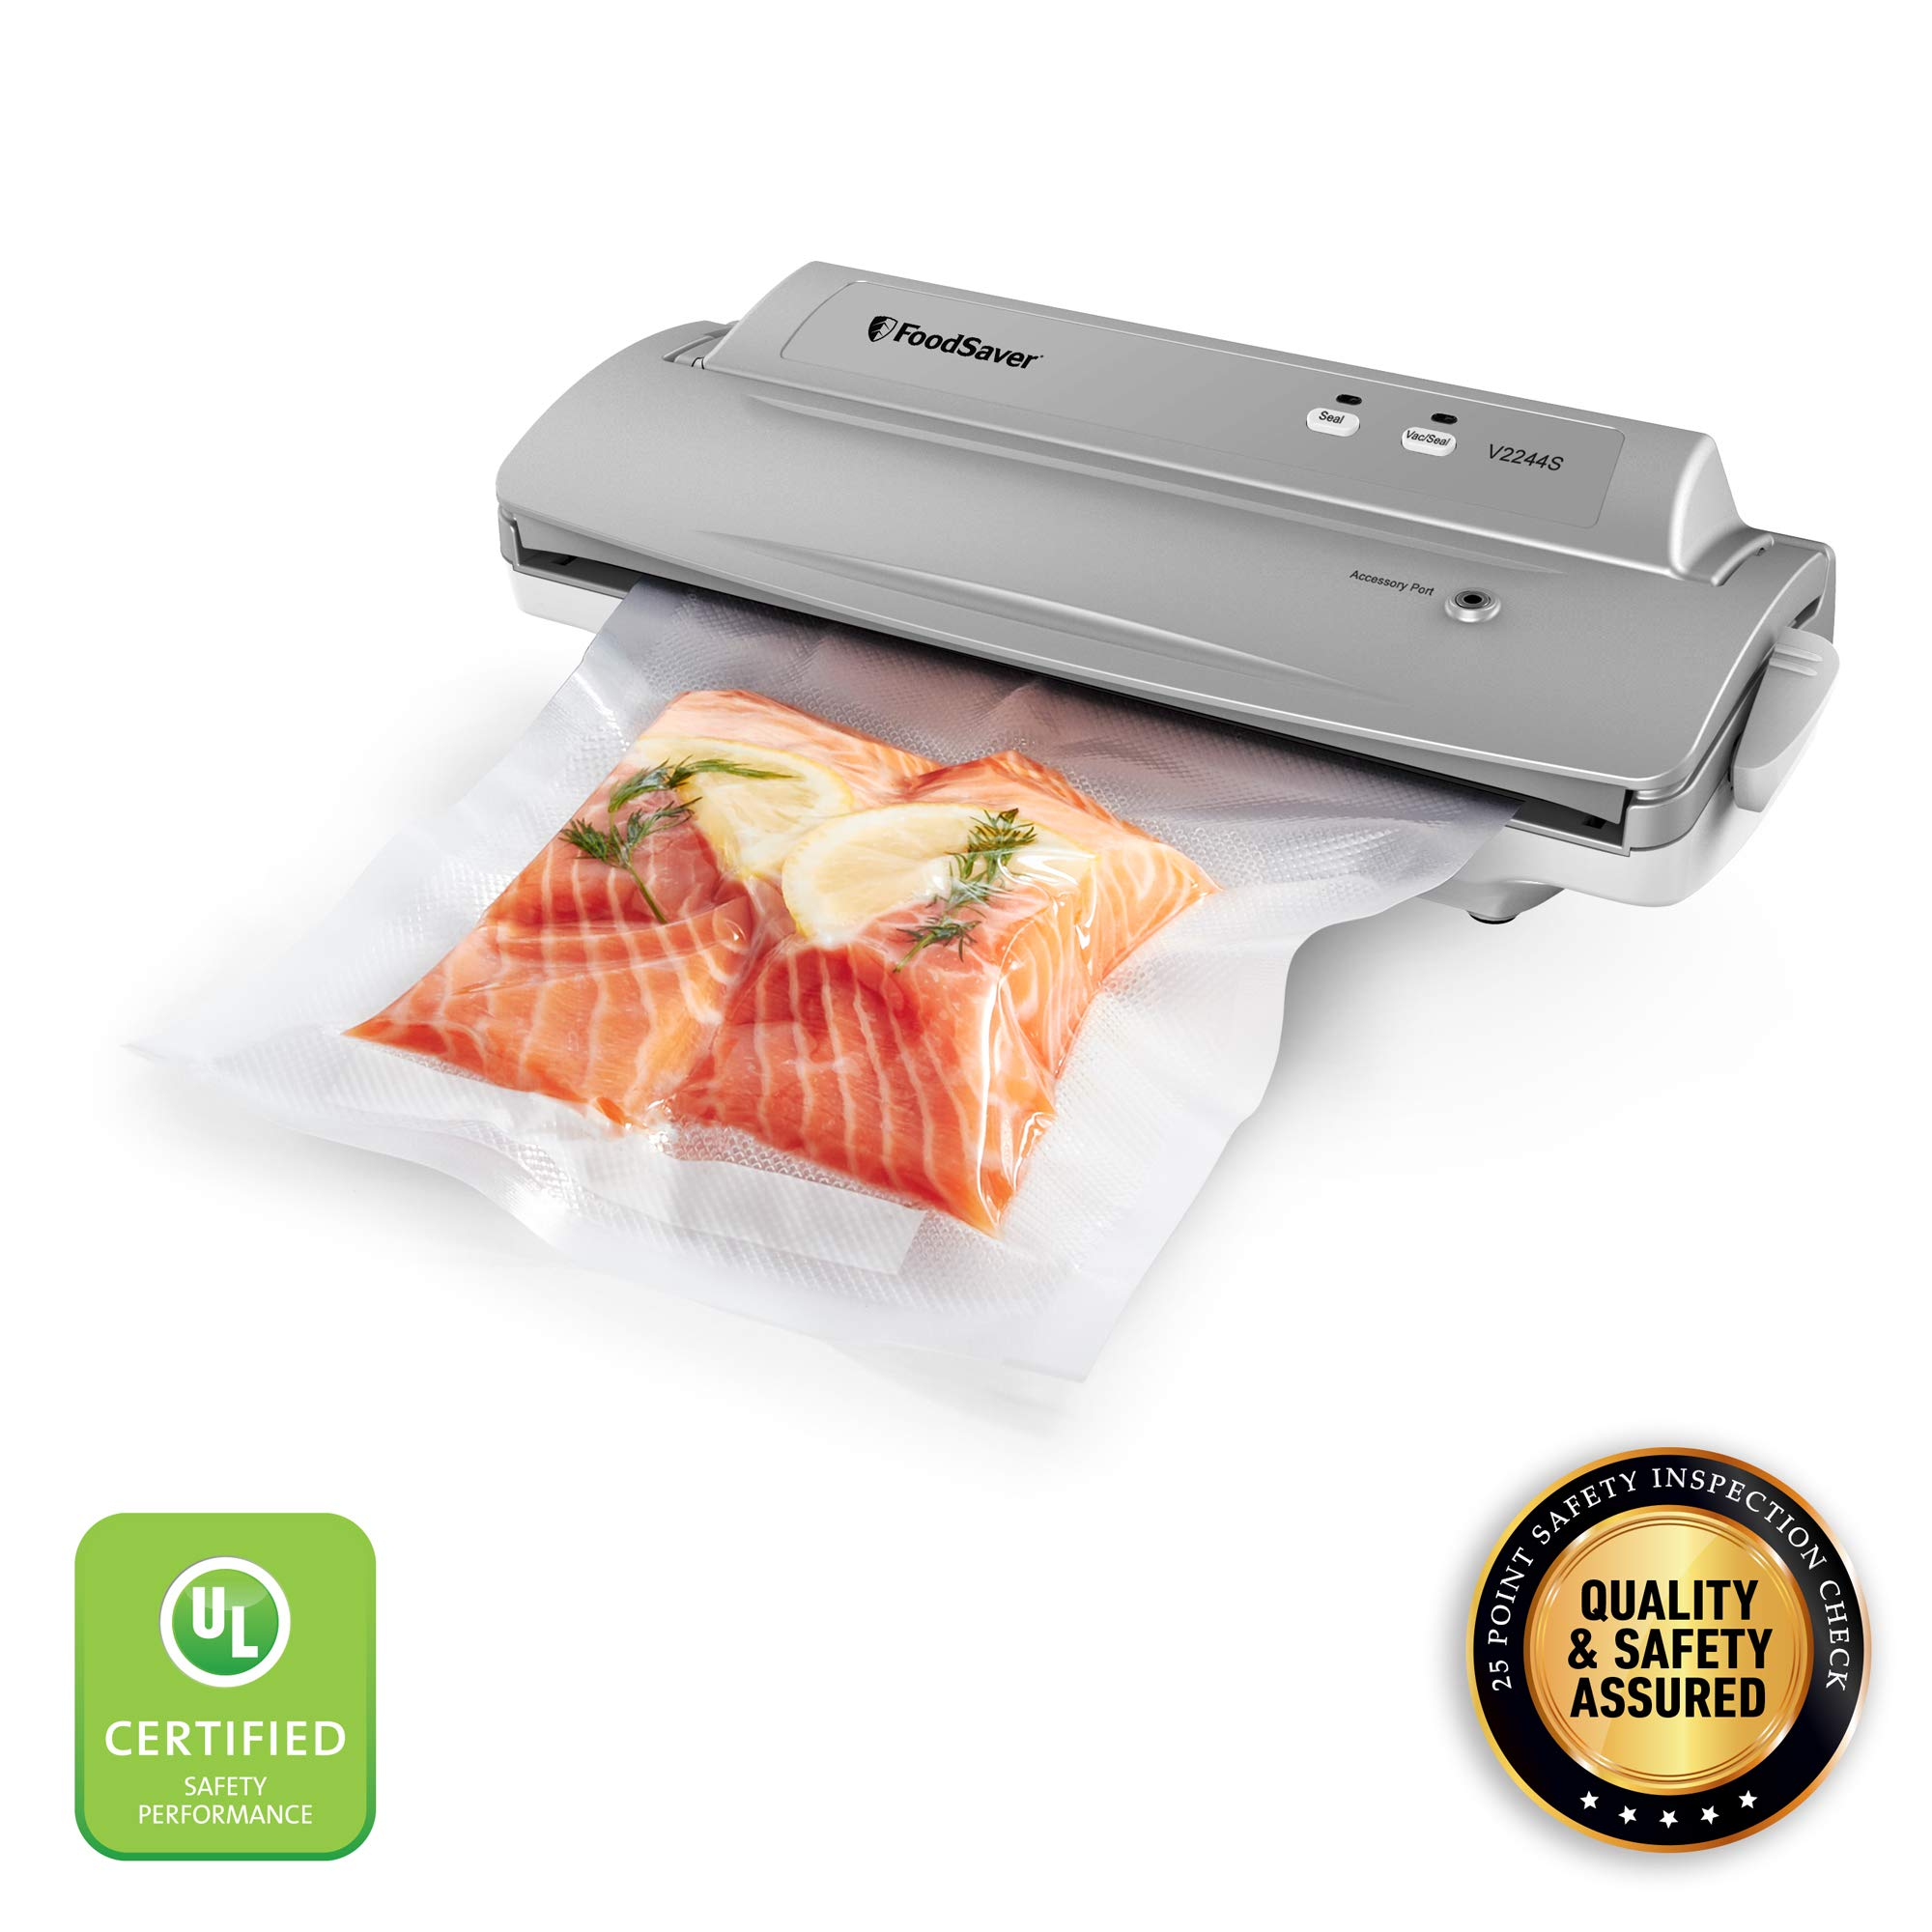 FoodSaver v2244 Machine for Food Preservation with Bags and Rolls Starter Kit | #1 Vacuum Sealer System | Compact & Easy Clean | UL Safety Certified | Silver,